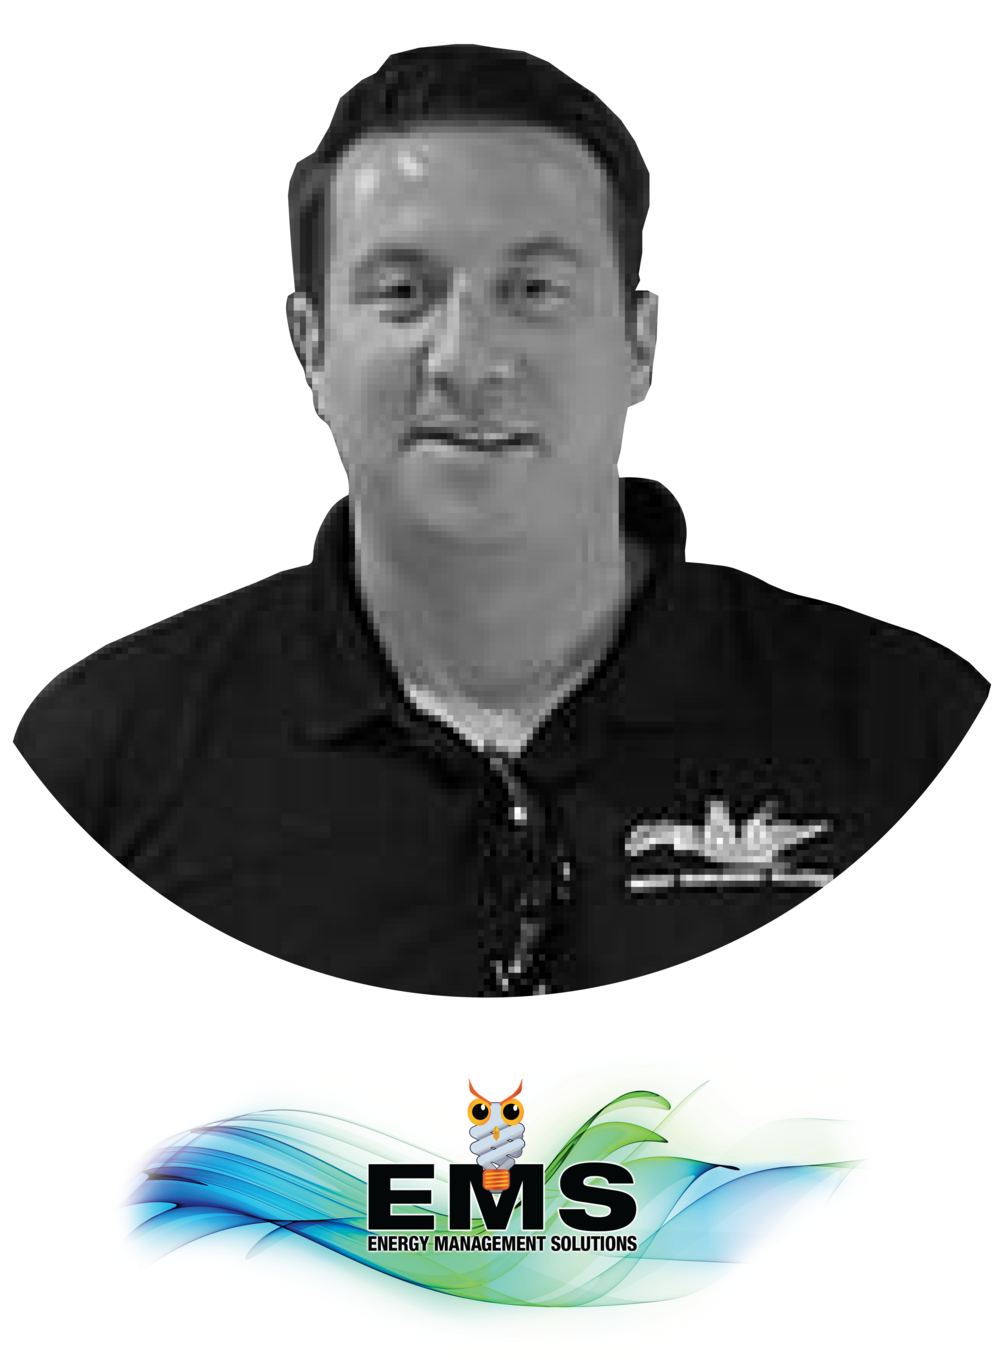 Jason Scher Energy Management Solutions Certifications: BPI Service Area:  Orange, Rockland Fun Fact: Undefeated in ping pong since '15